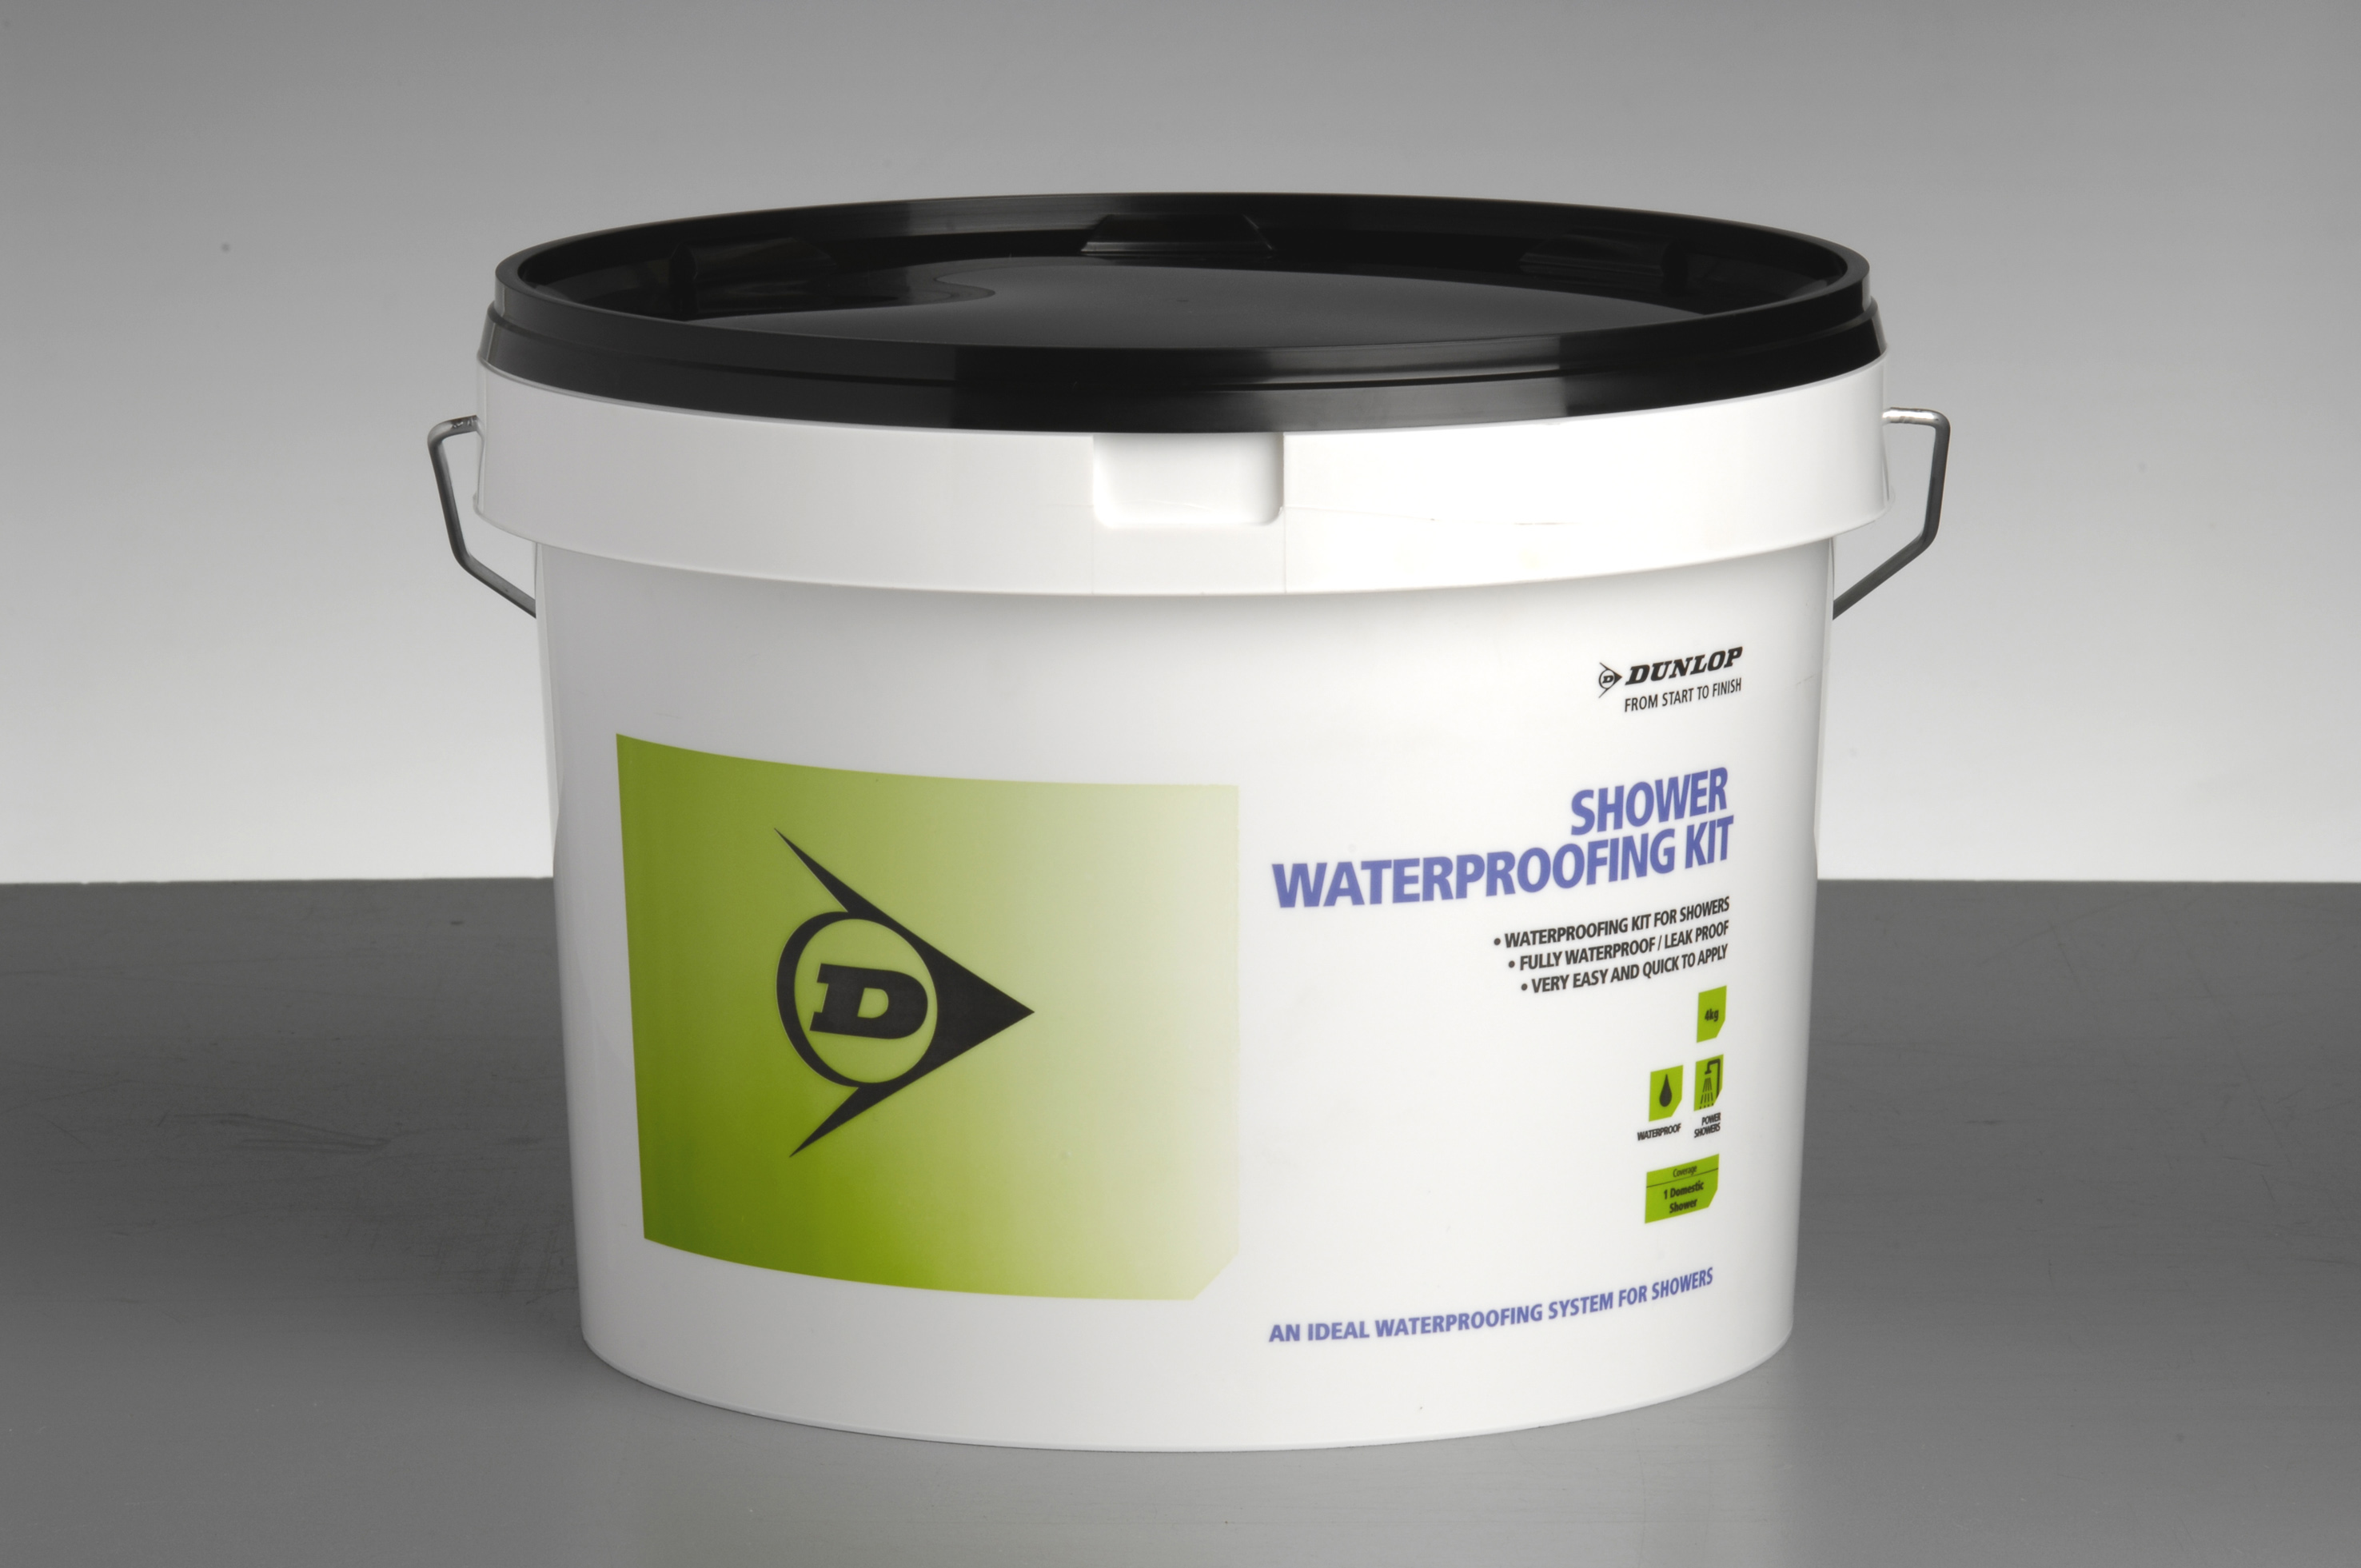 Various tanking kits are available, including the Dunlop Shower Waterproofing Kit, to prime, seal and protect.